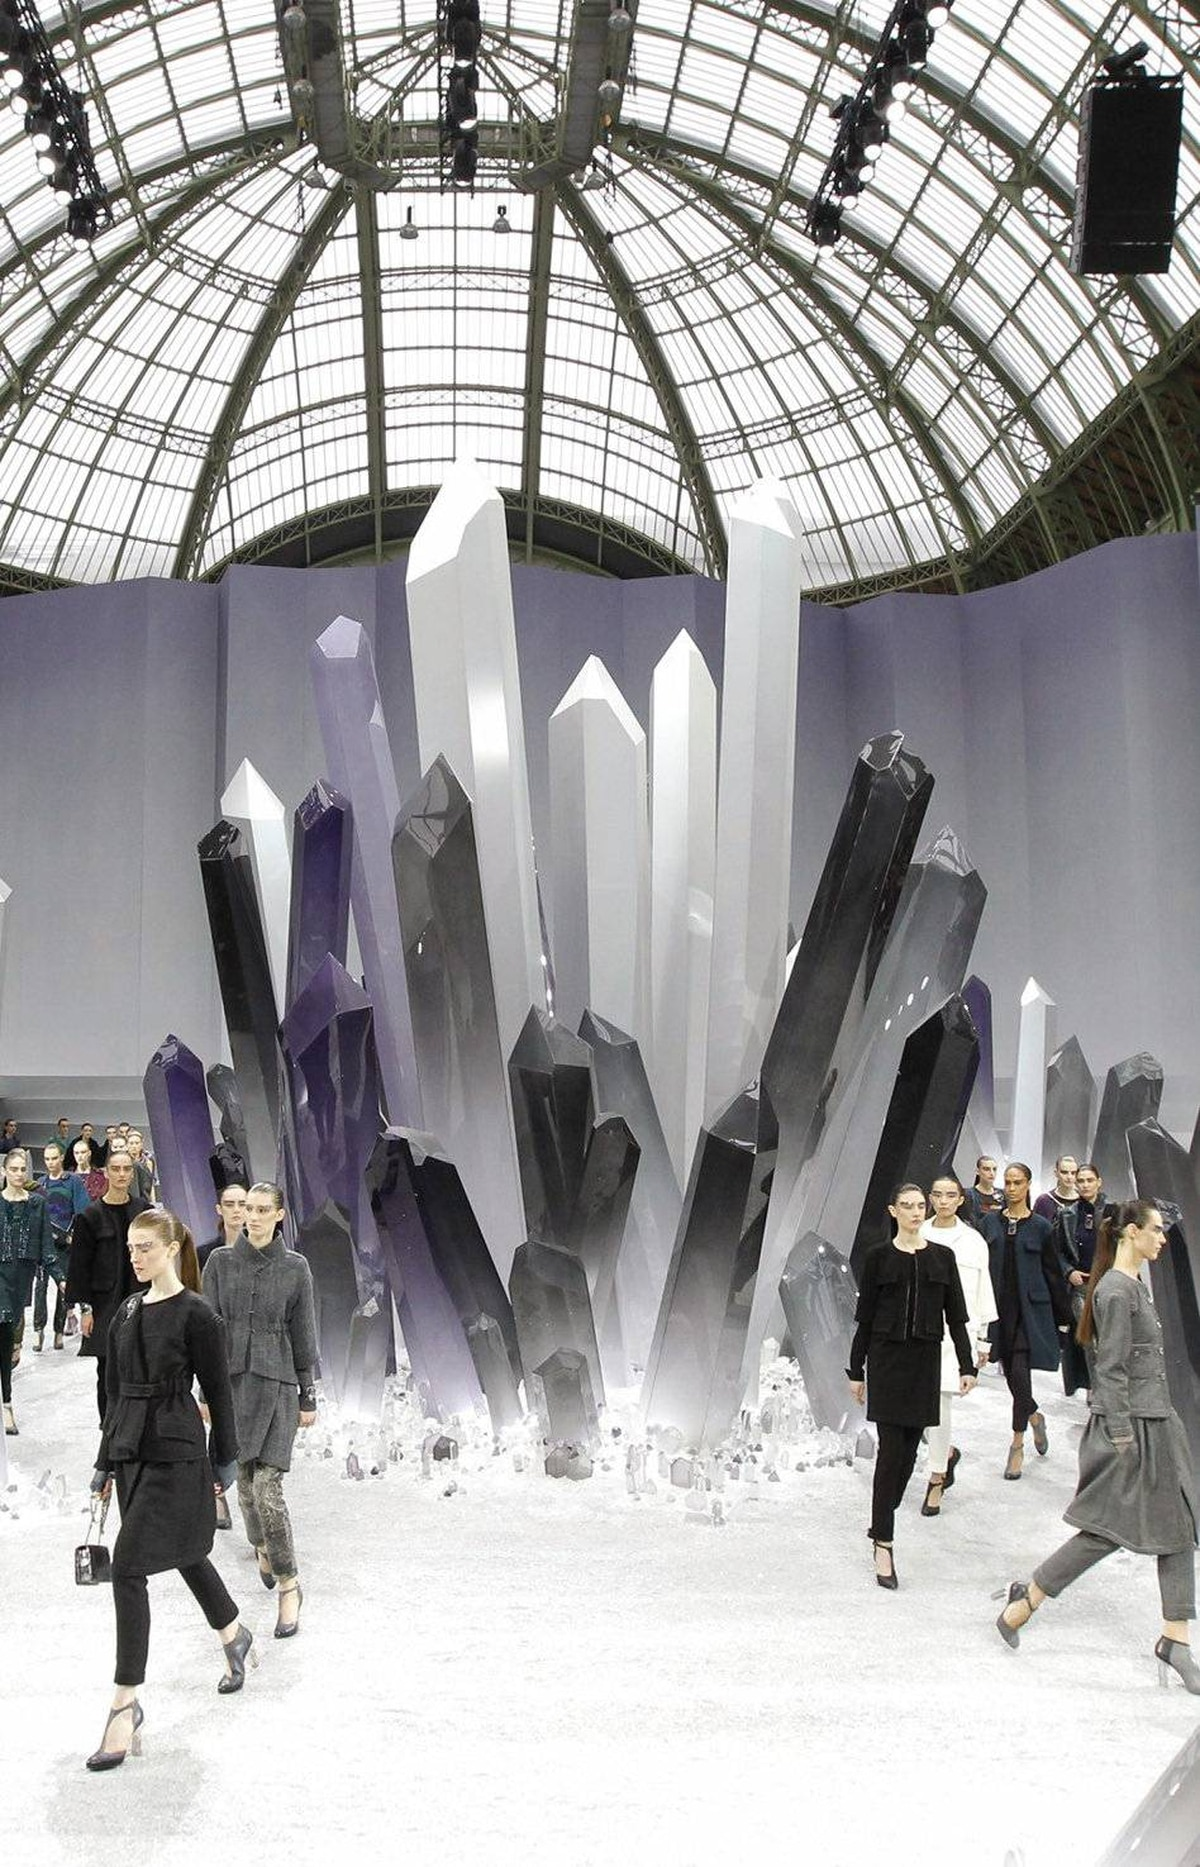 Last season, Karl Lagerfeld conceived a bleached underwater mise-en-scène for his Chanel ready-to-wear show. On Tuesday, gigantic stalactites appeared to have broken through the ground of the Grand Palais. It's as if he's taking us through his decadent interpretation of the Planet Earth documentary series.